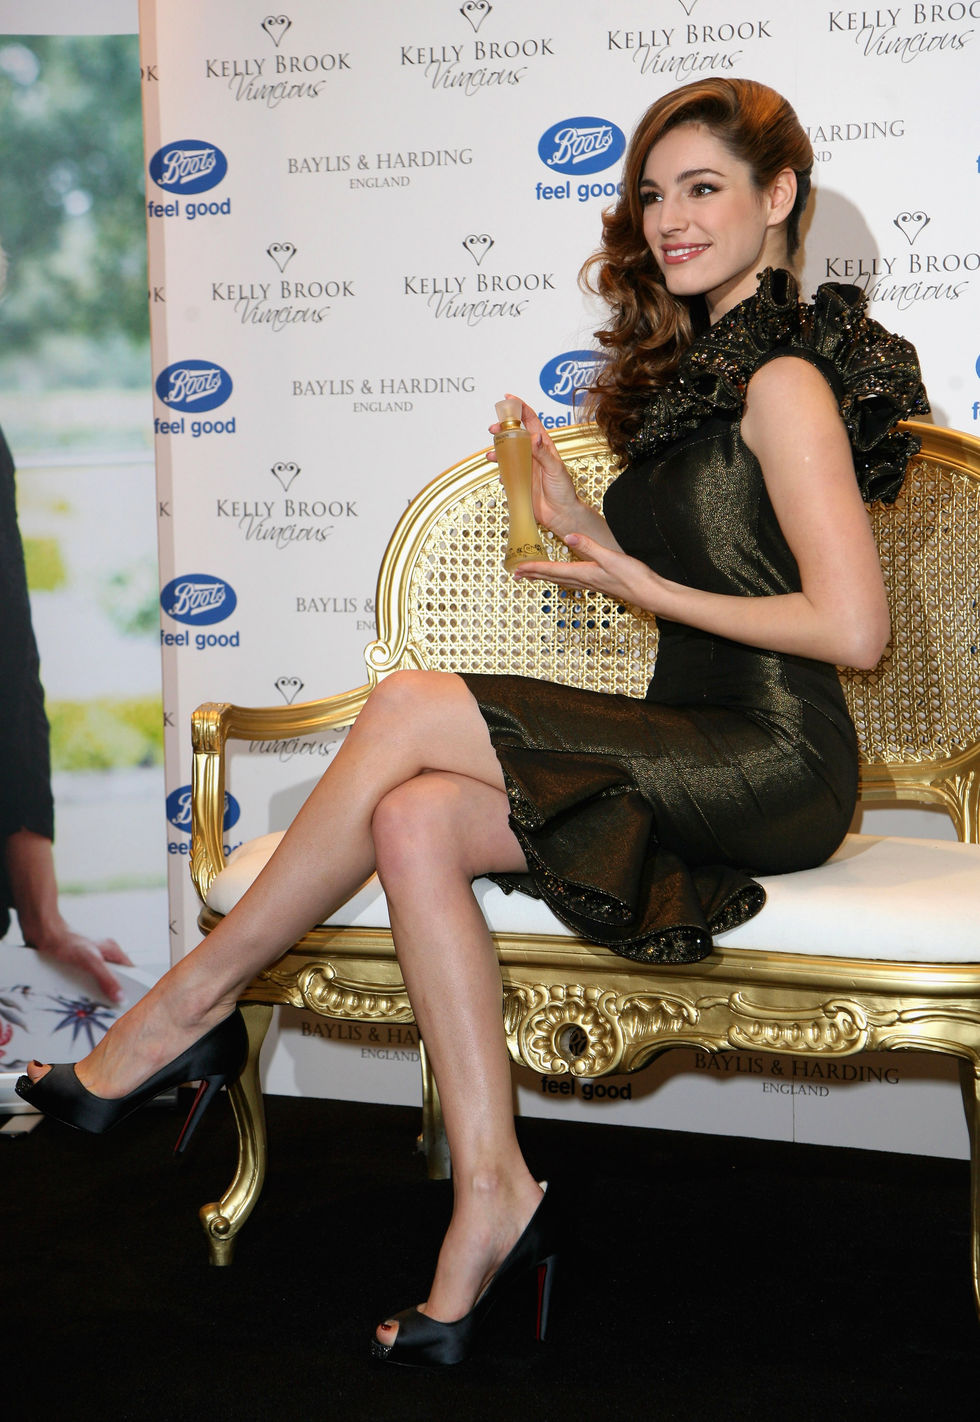 kelly-brook-vivacious-fragance-promotion-at-boots-in-london-08